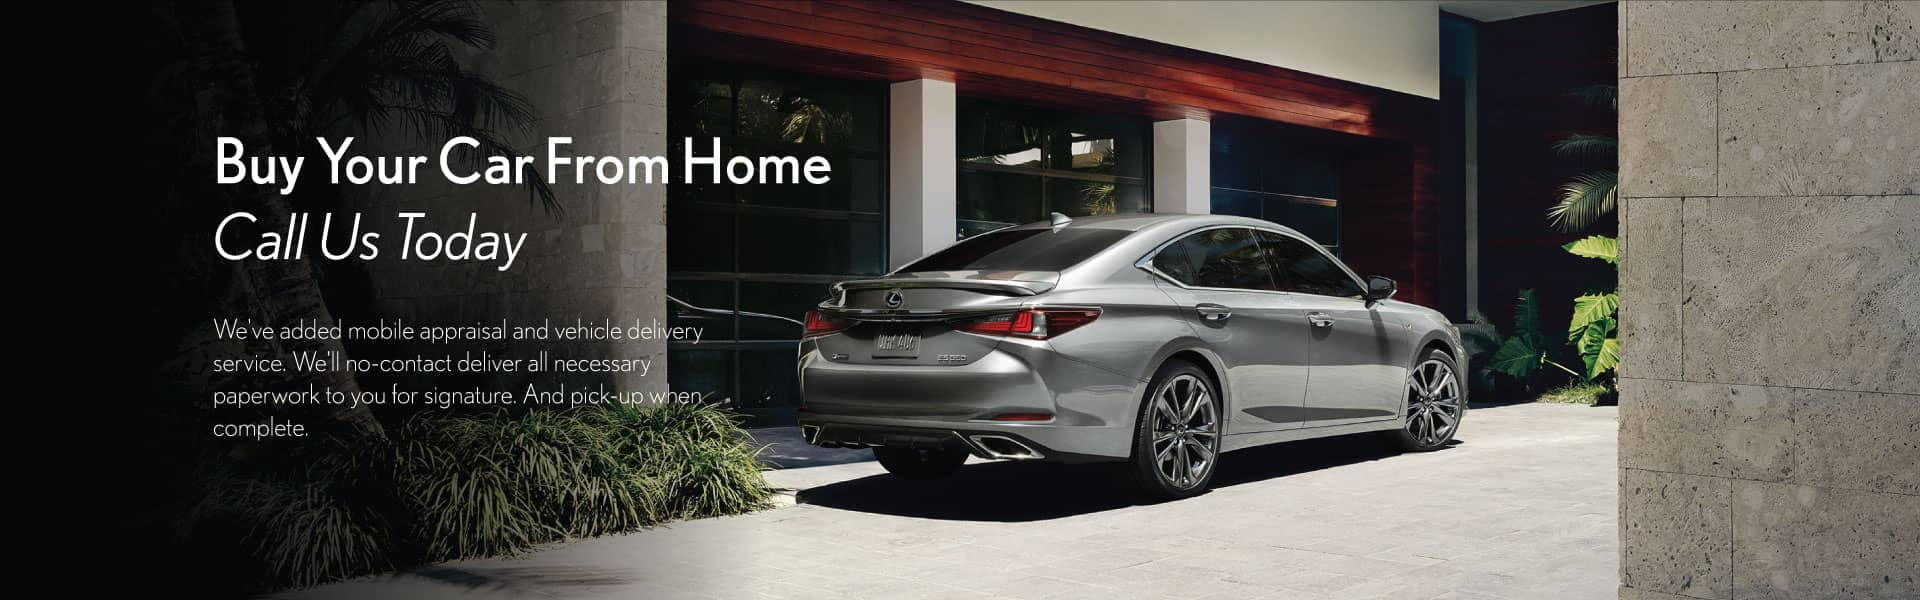 Buy Your Car from Home